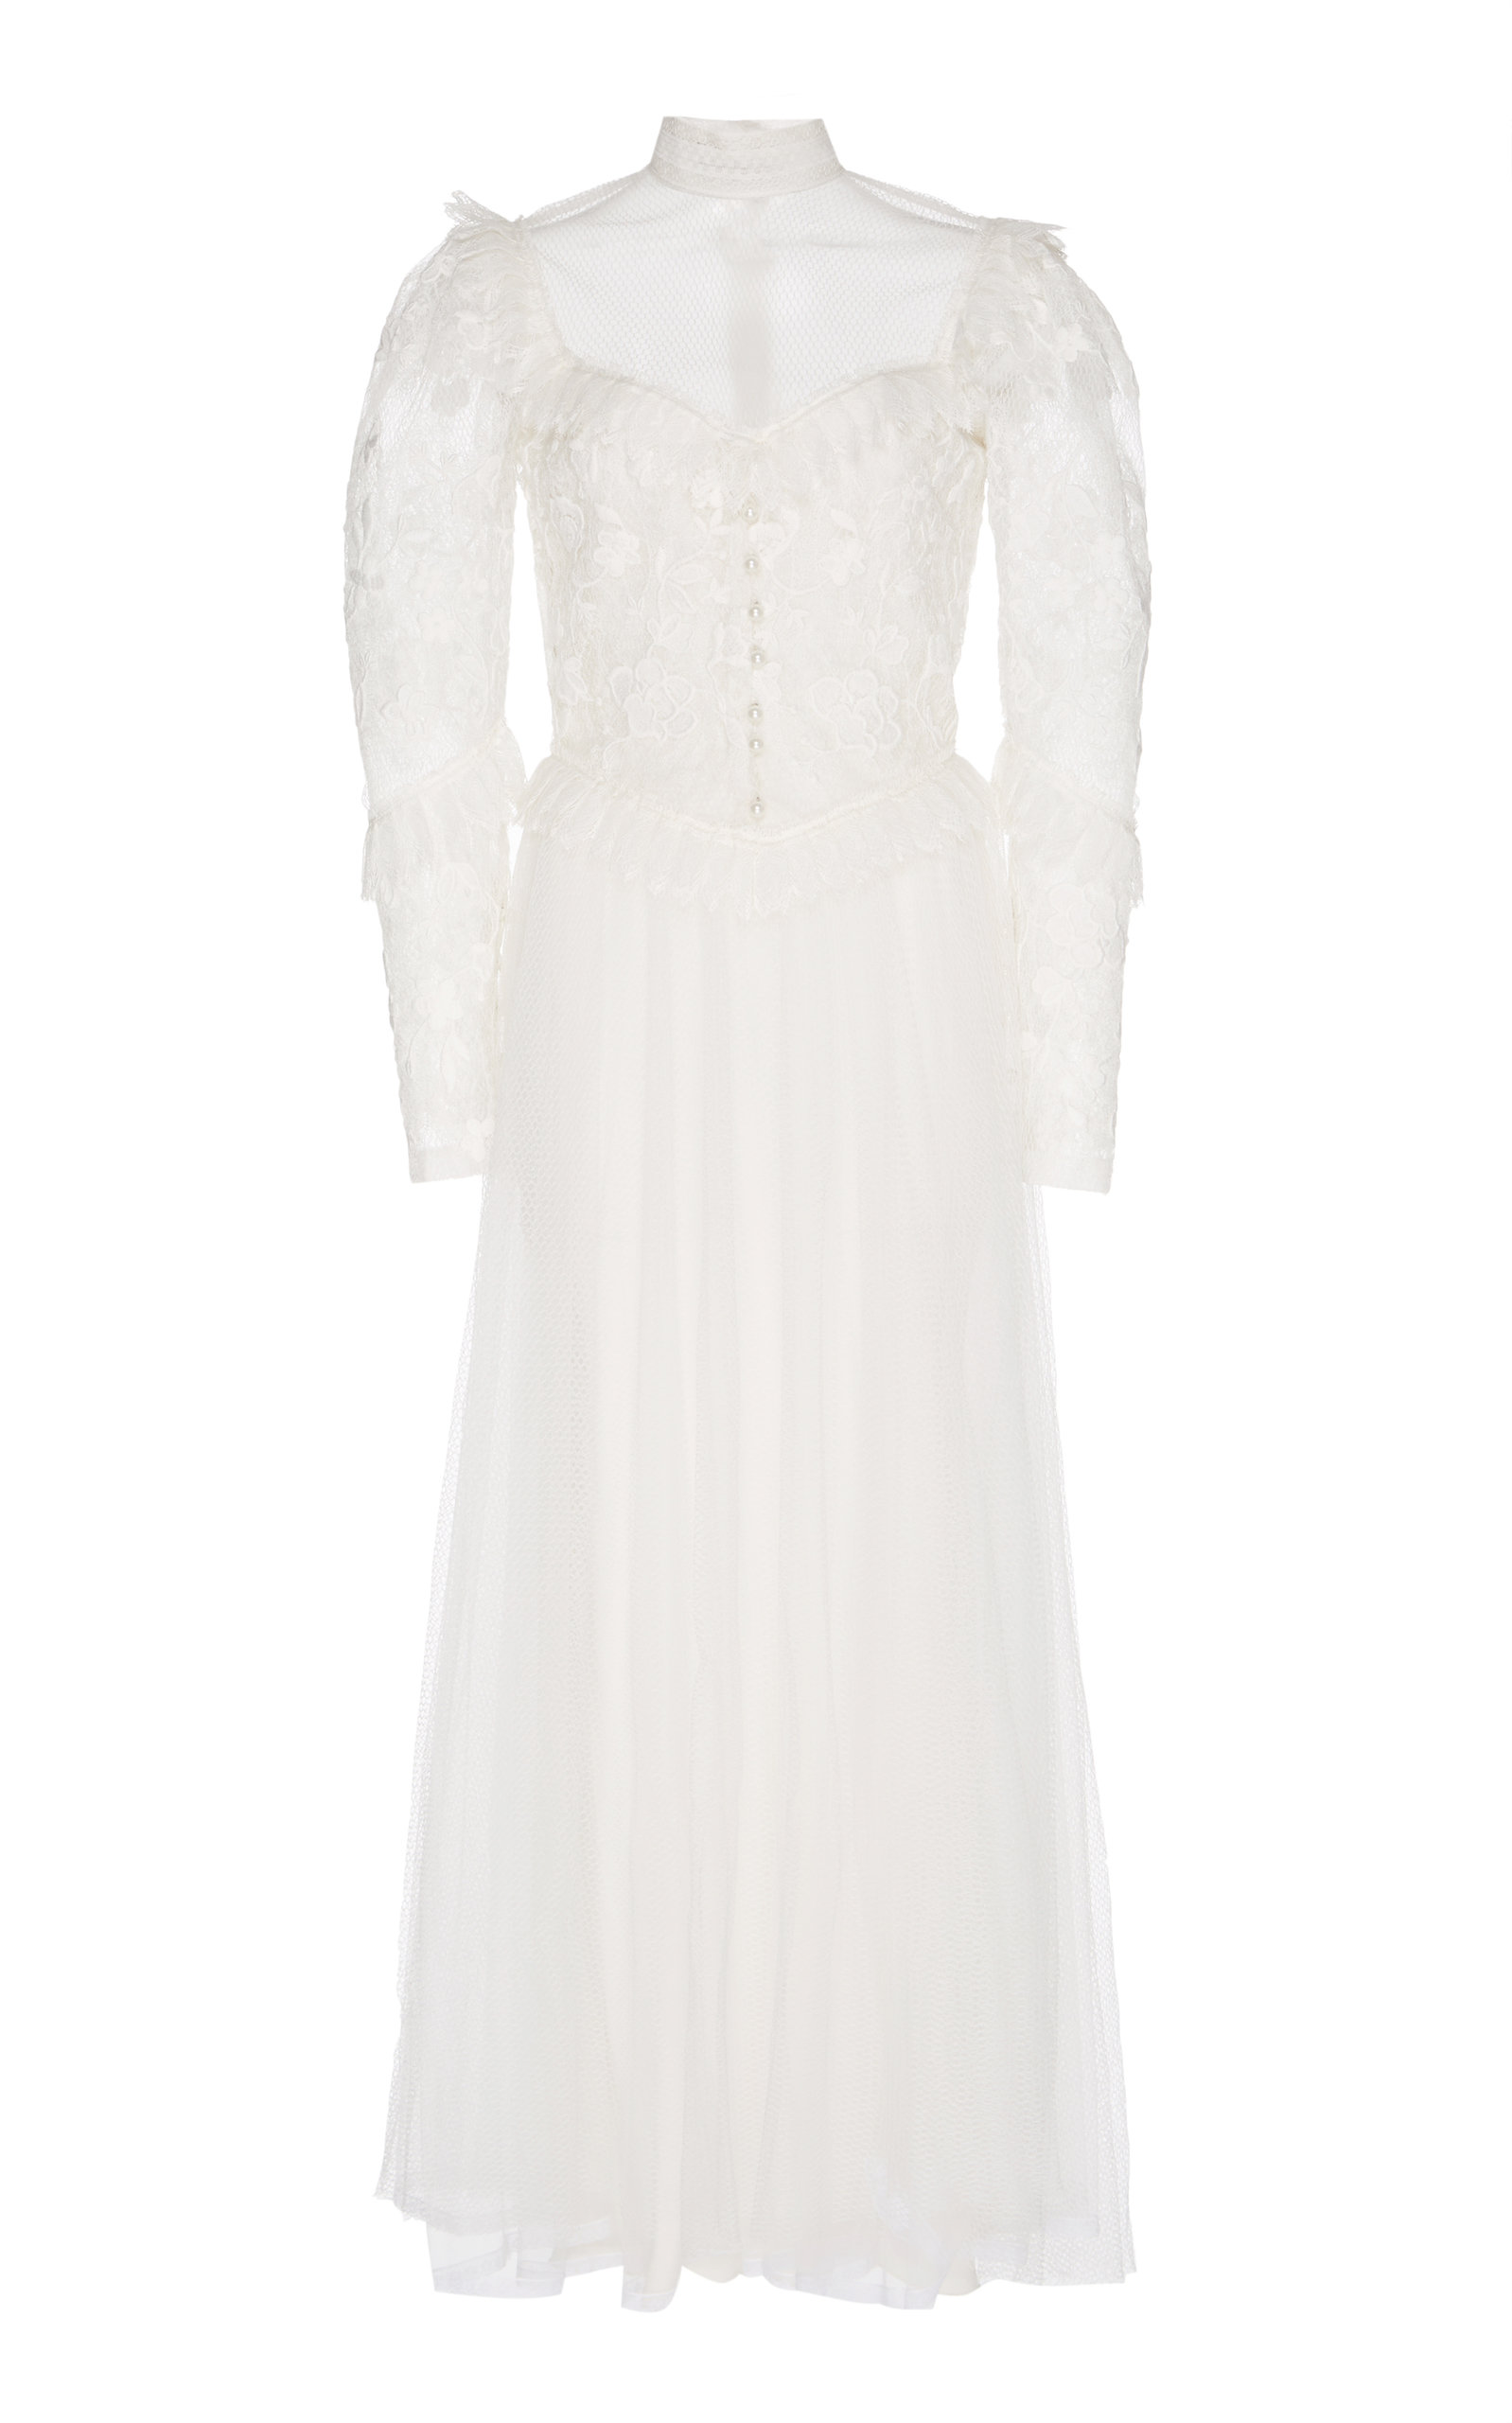 SANDRA MANSOUR Lace Embroidered Midi Dress in White